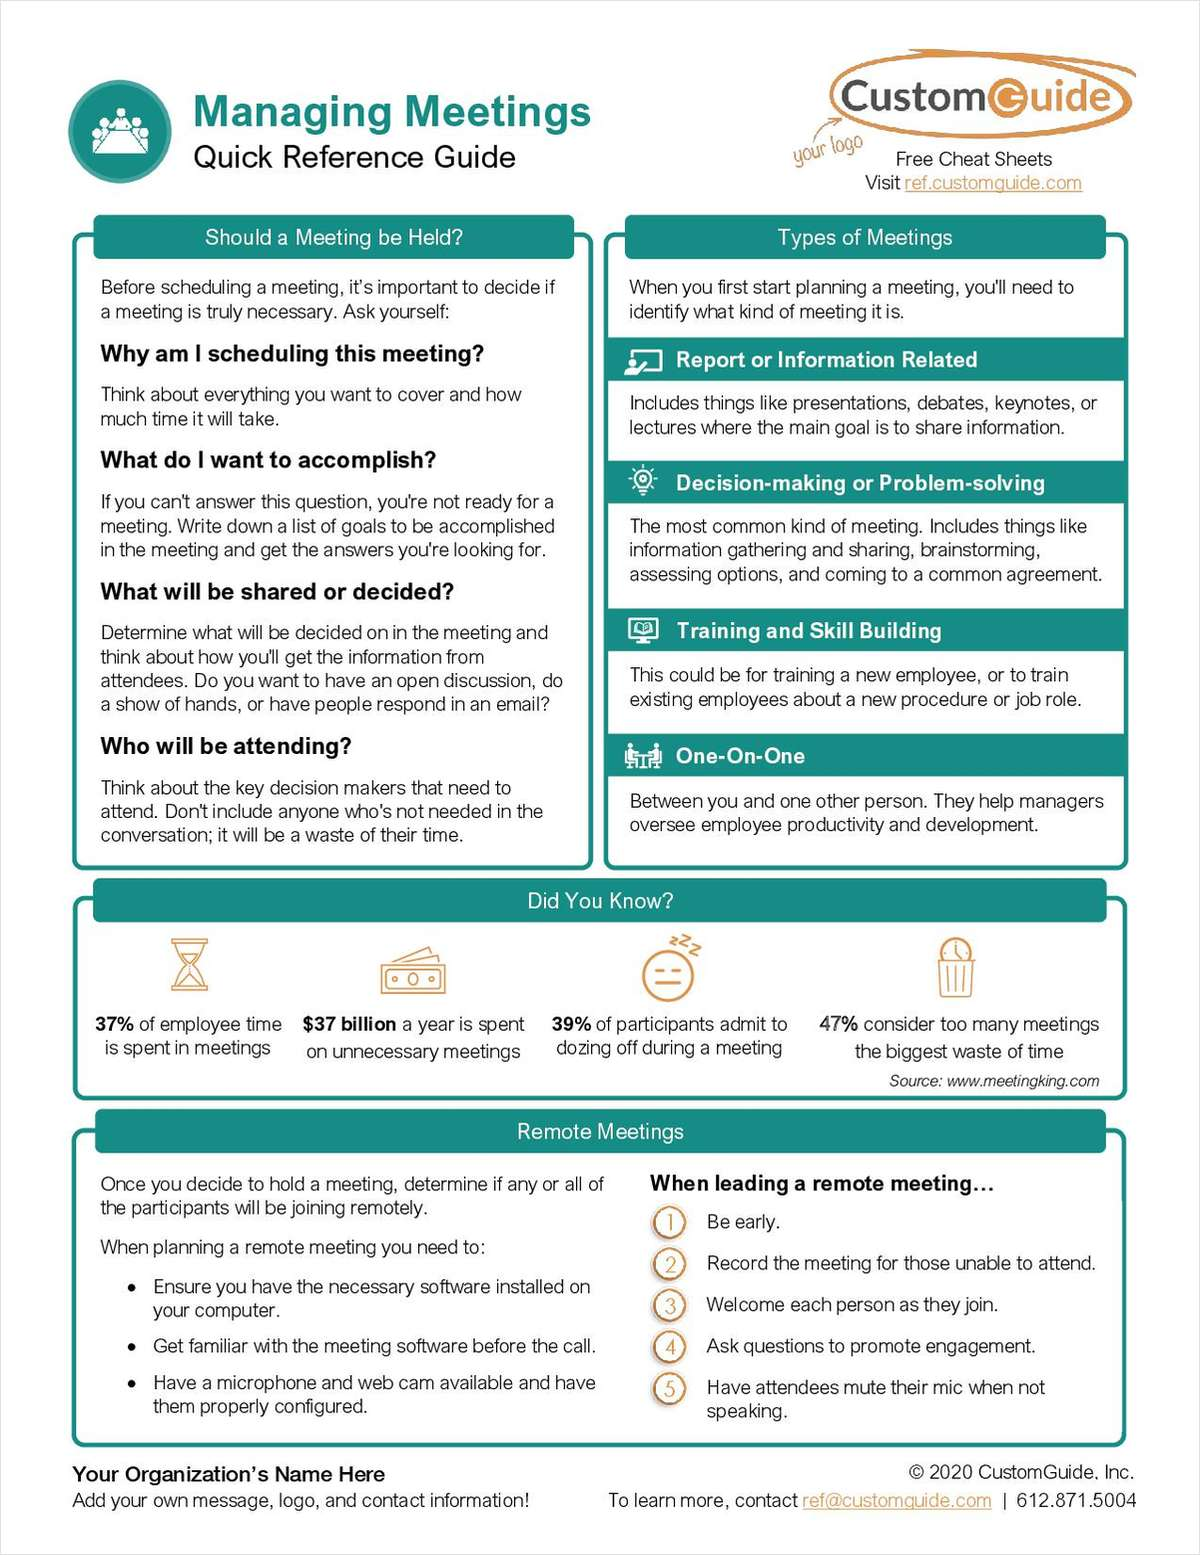 Managing Meeting Quick Reference Guide